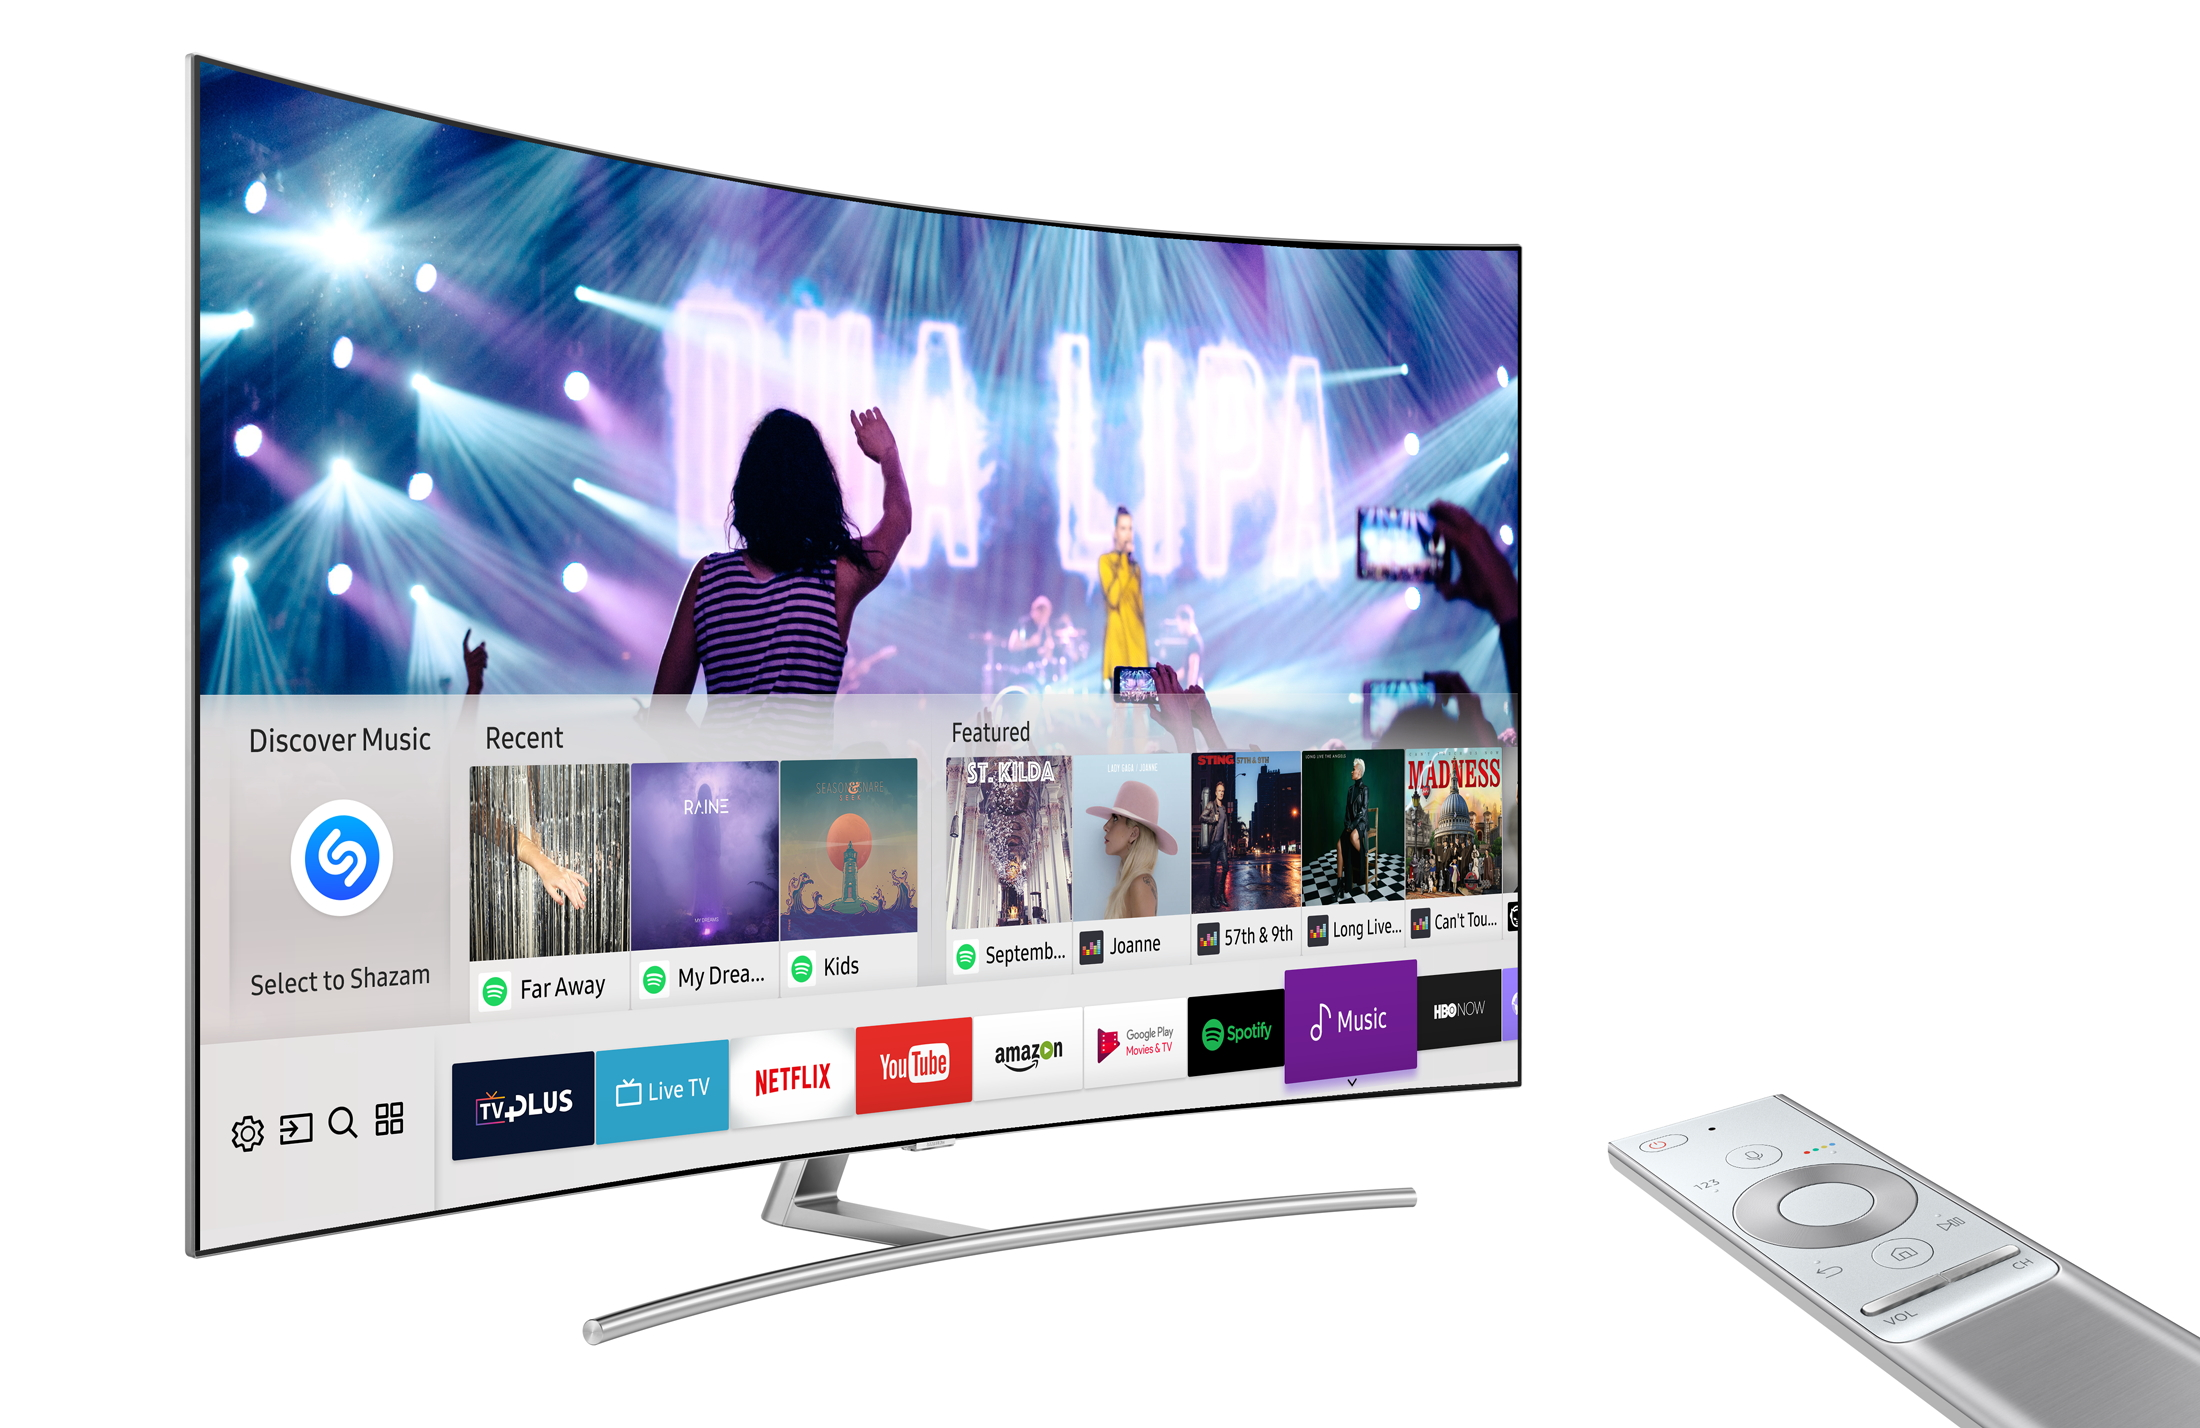 Samsung smart TV providing songs and movies with various content suppliers such as Amazon and Netflix. (photo courtesy: Samsung Electronics)